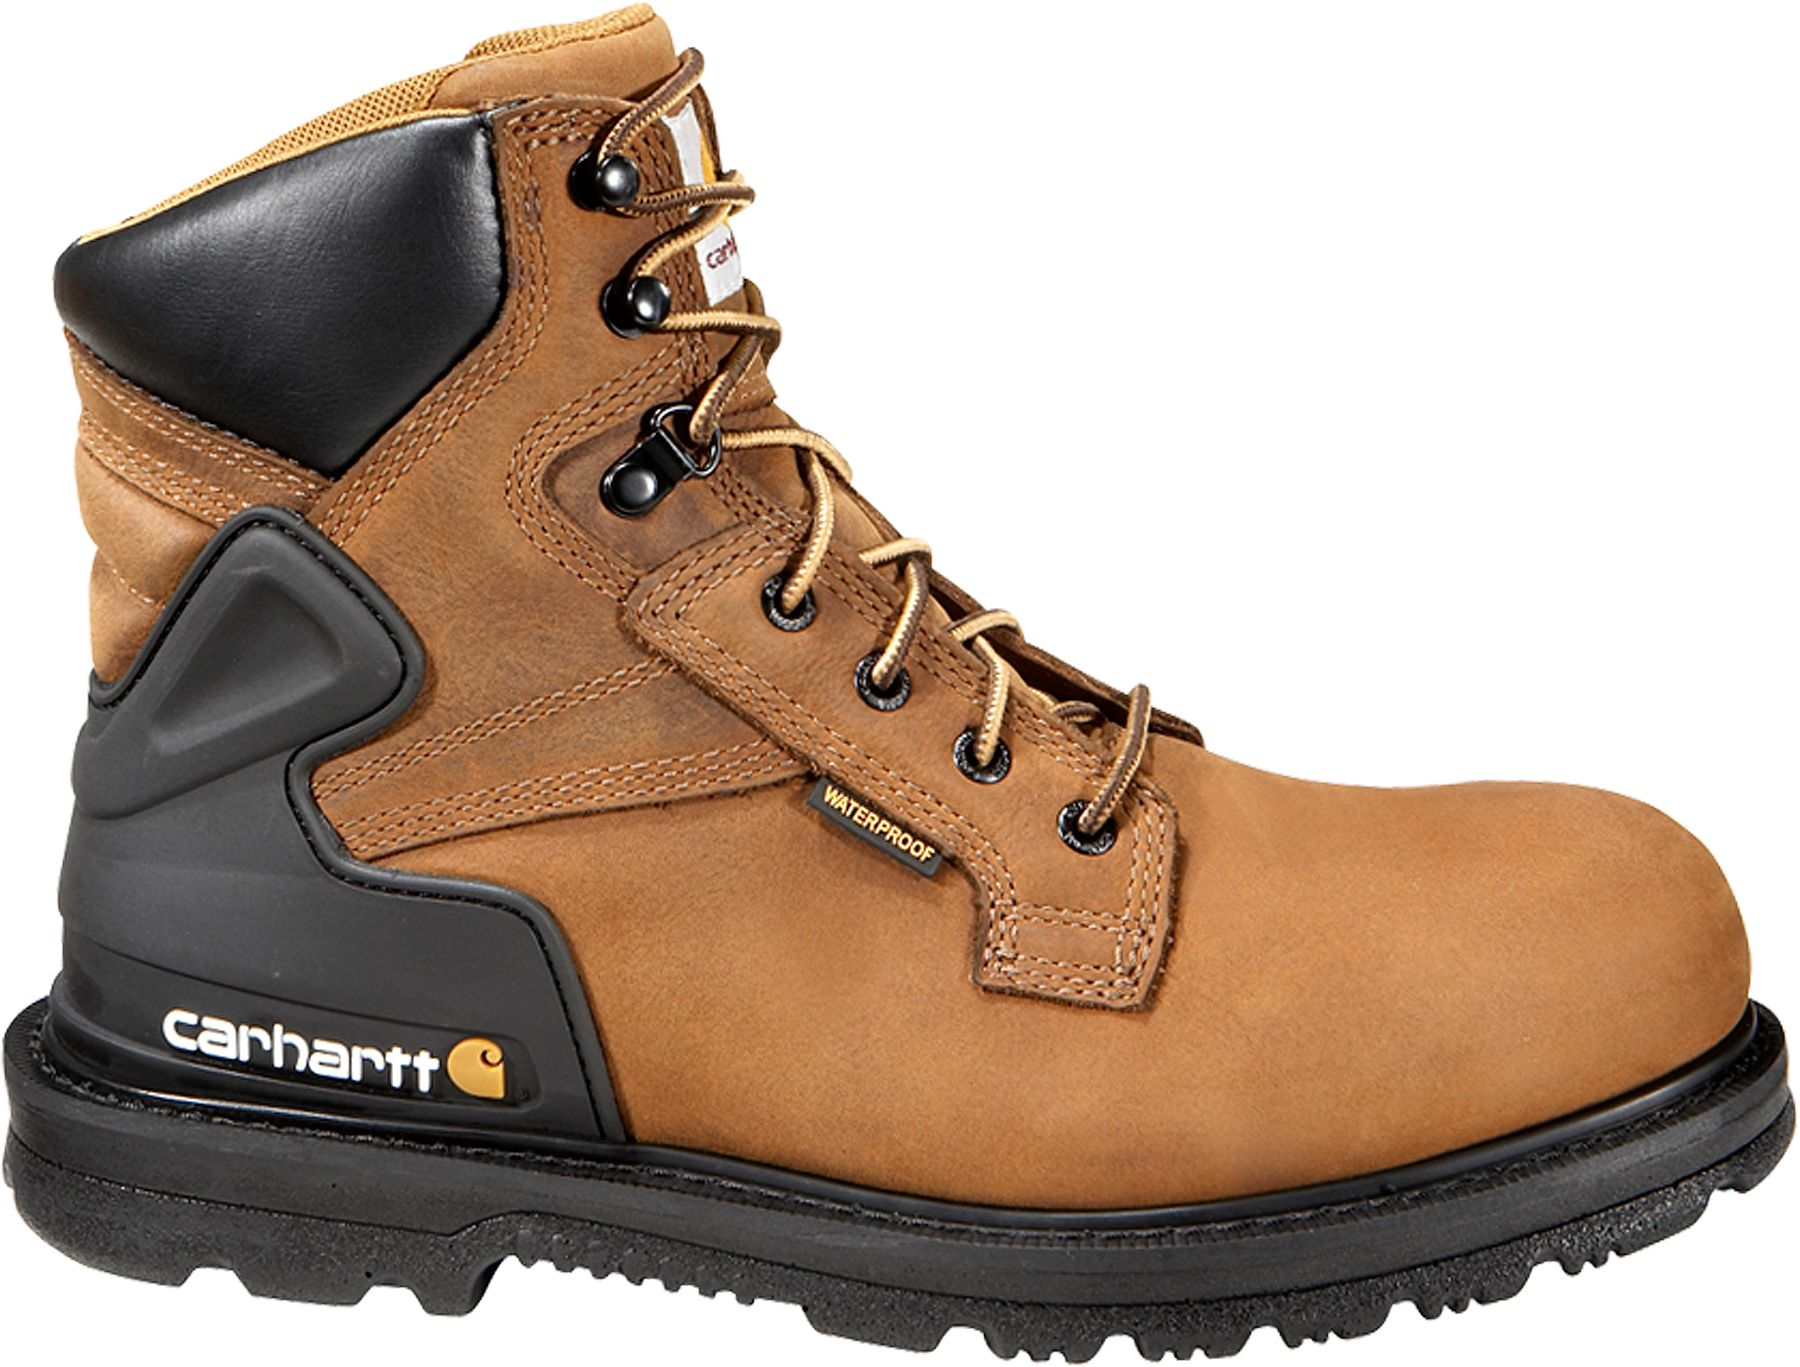 Carhartt Men's Bison 6'' Safety Toe Waterproof Work Boots | DICK'S Sporting  Goods